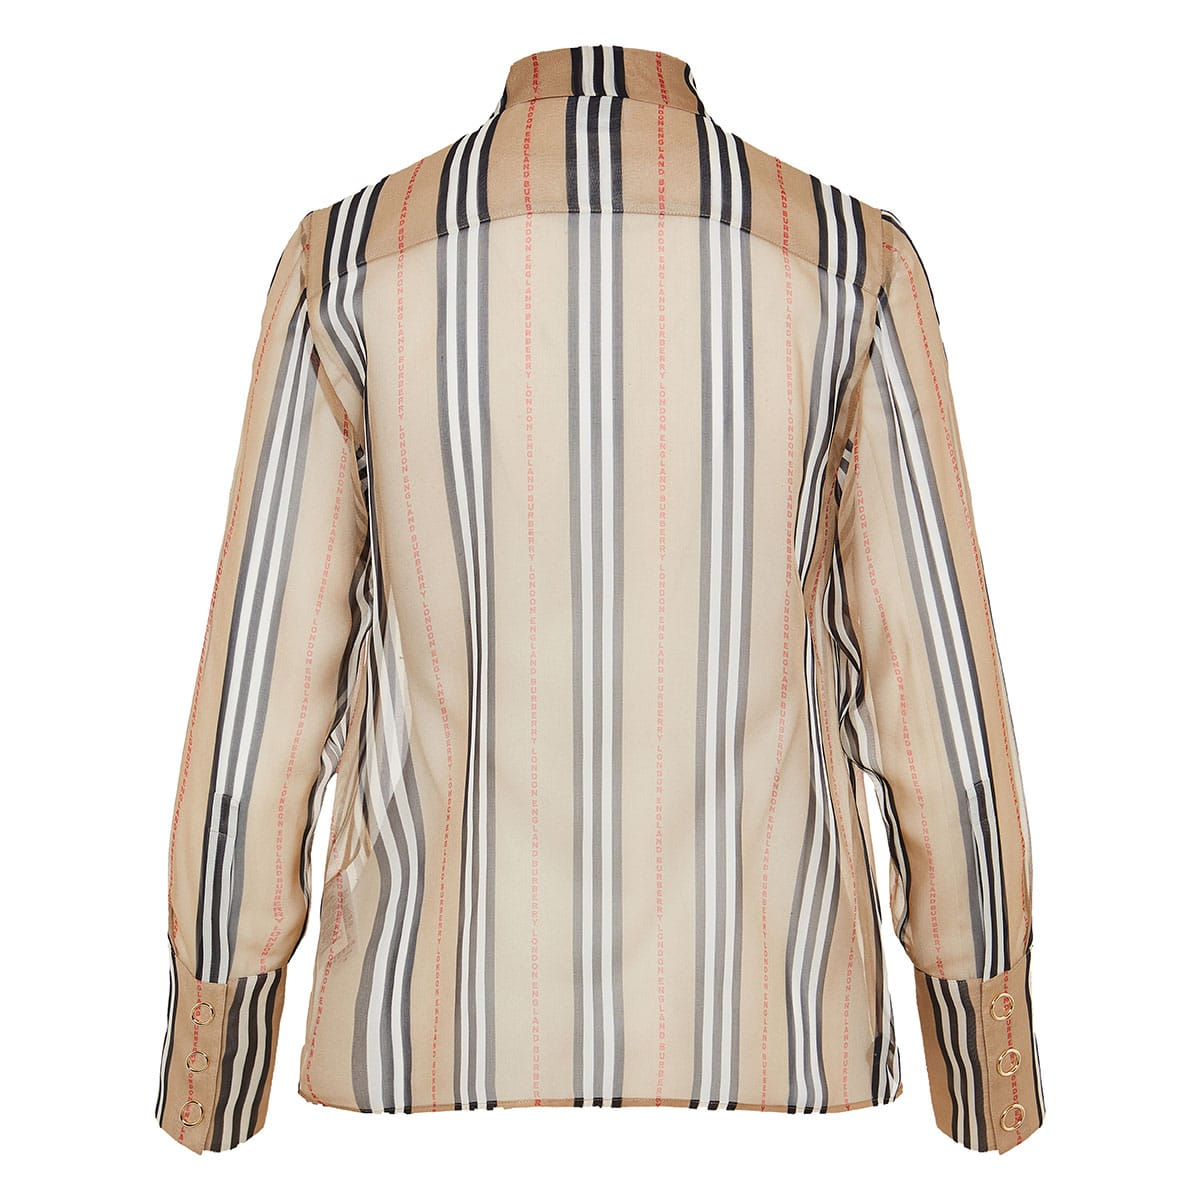 Logo and Stripe bow-tie sheer shirt